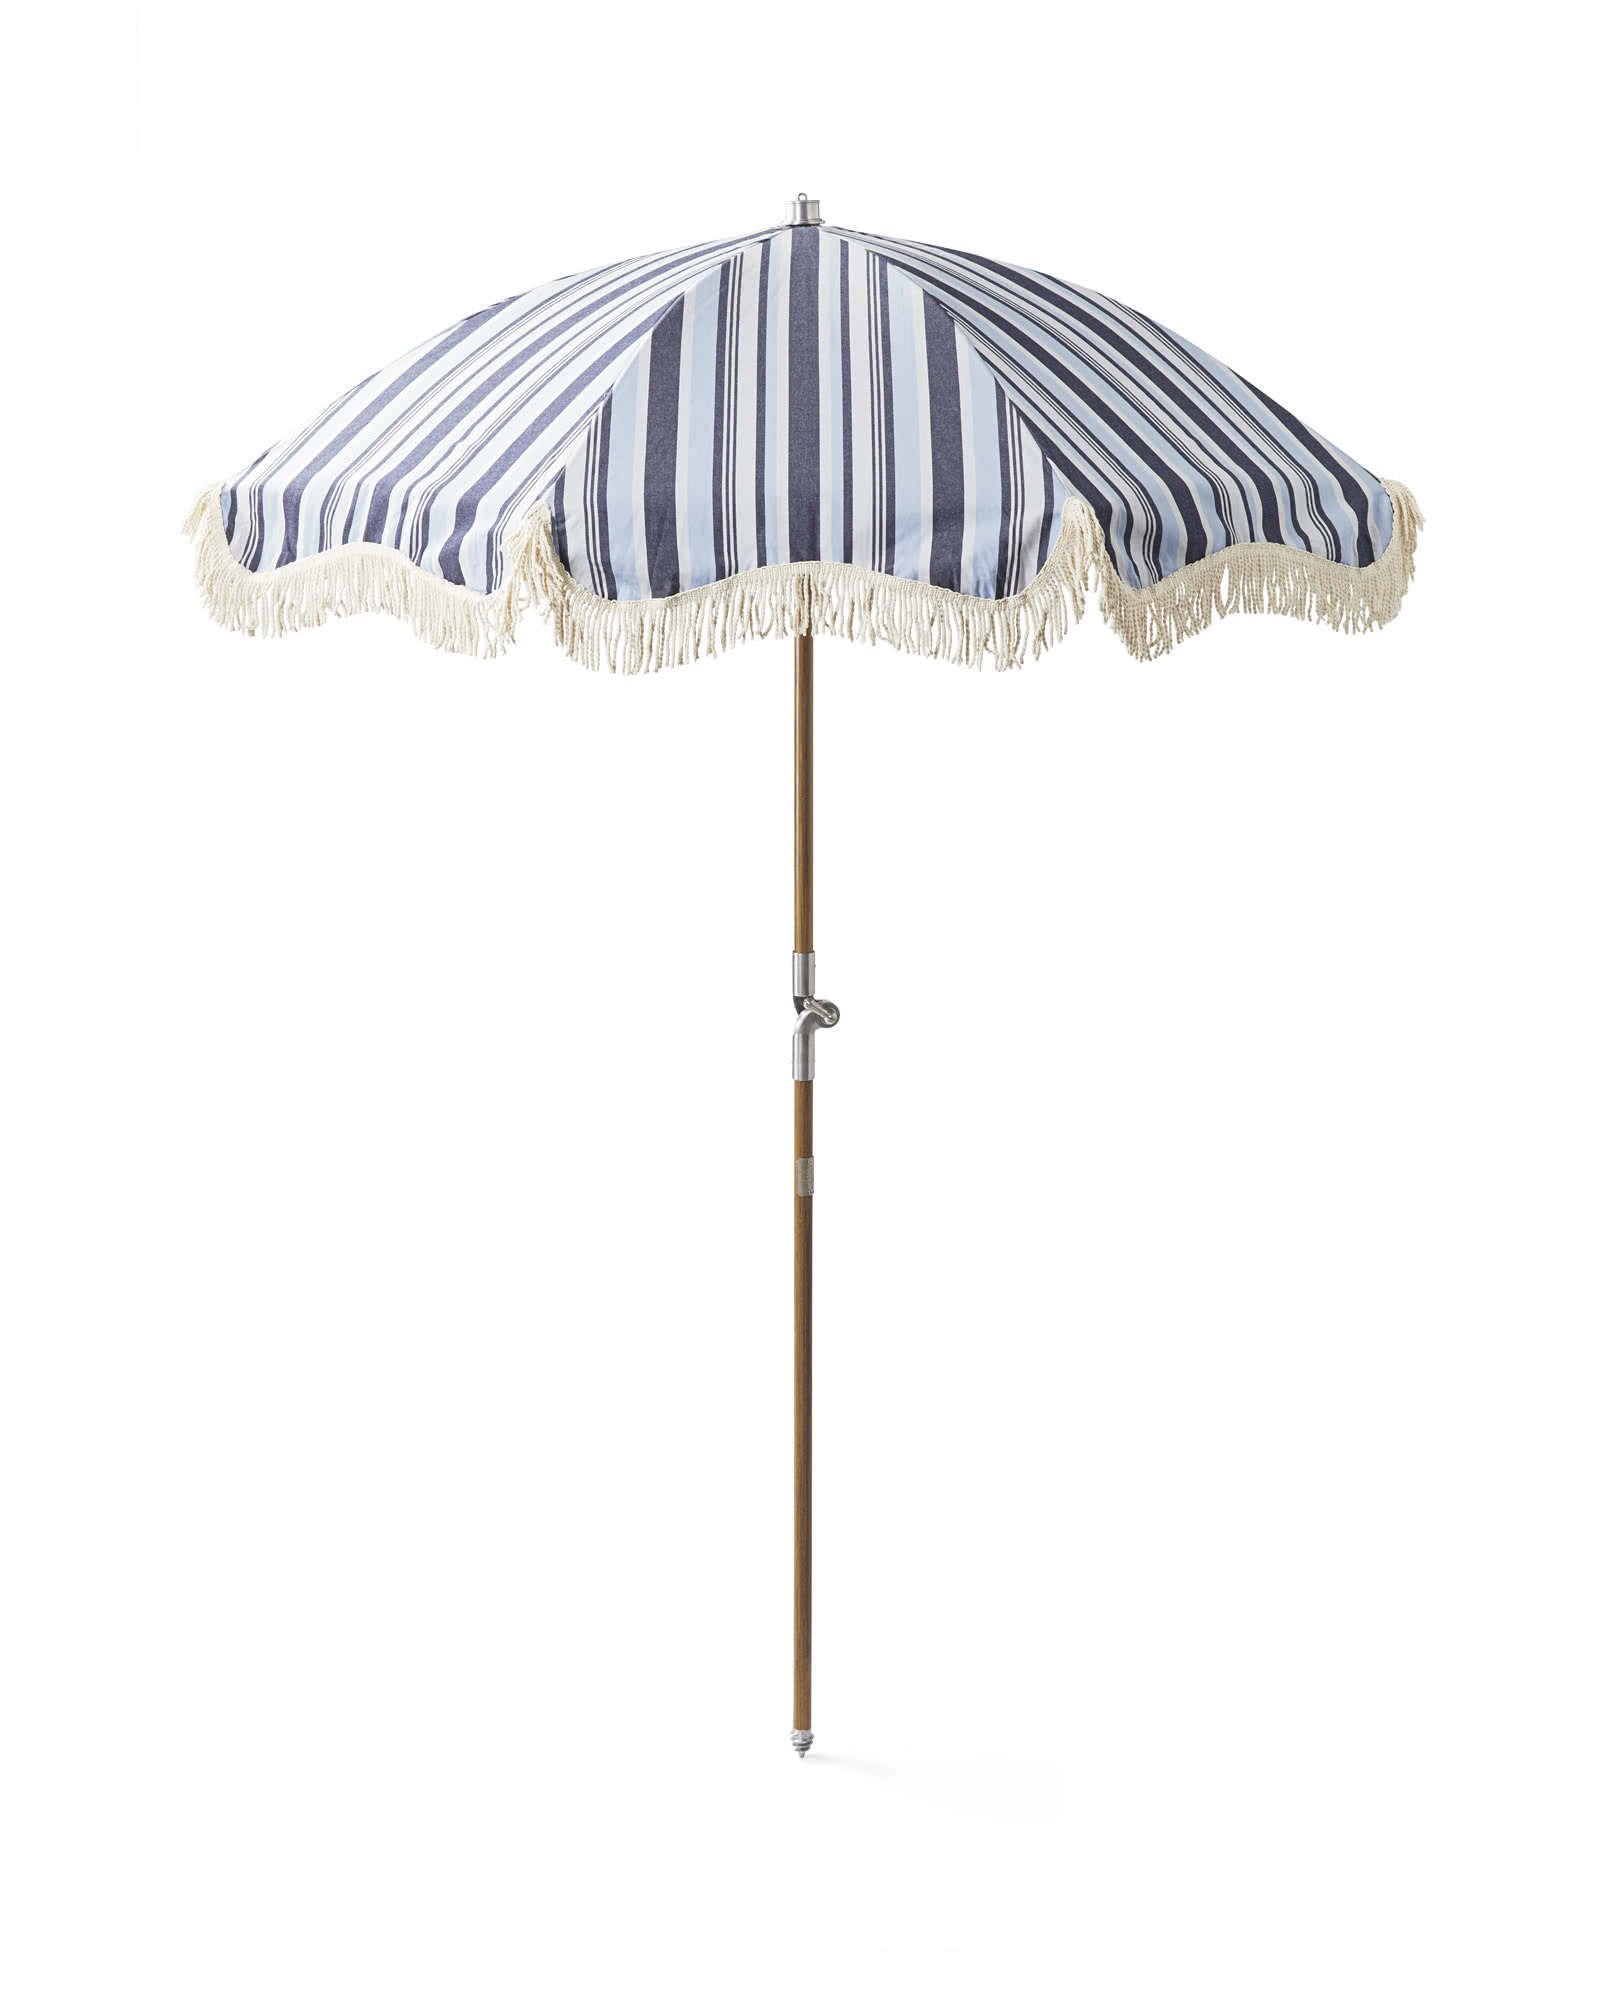 Furn_Harbour_View_Umbrella_5_Blue_Open_MV_0281_Crop_SH.jpg